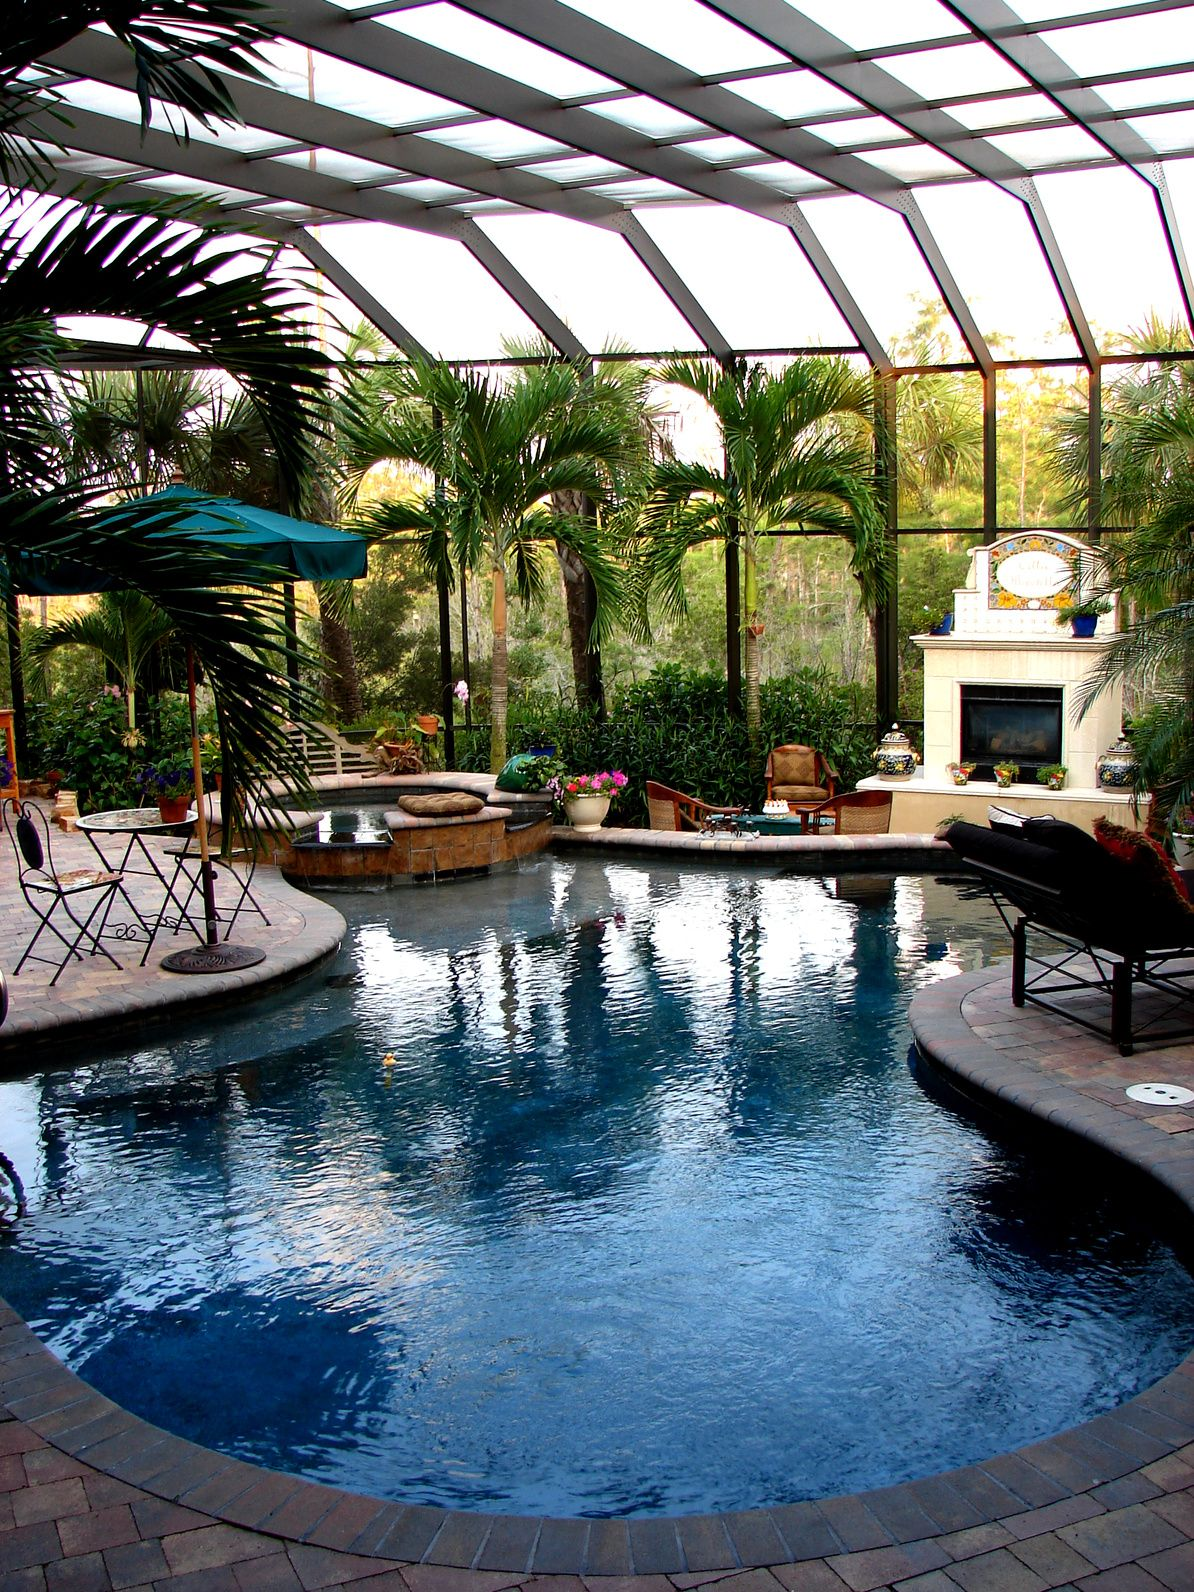 Jacksonville fl in addition fiberglass pools jacksonville fl on home - Large Screened In Pool Pools Patios And Outdoor Living Pinterest Backyard Swimming Pools And Outdoor Spaces